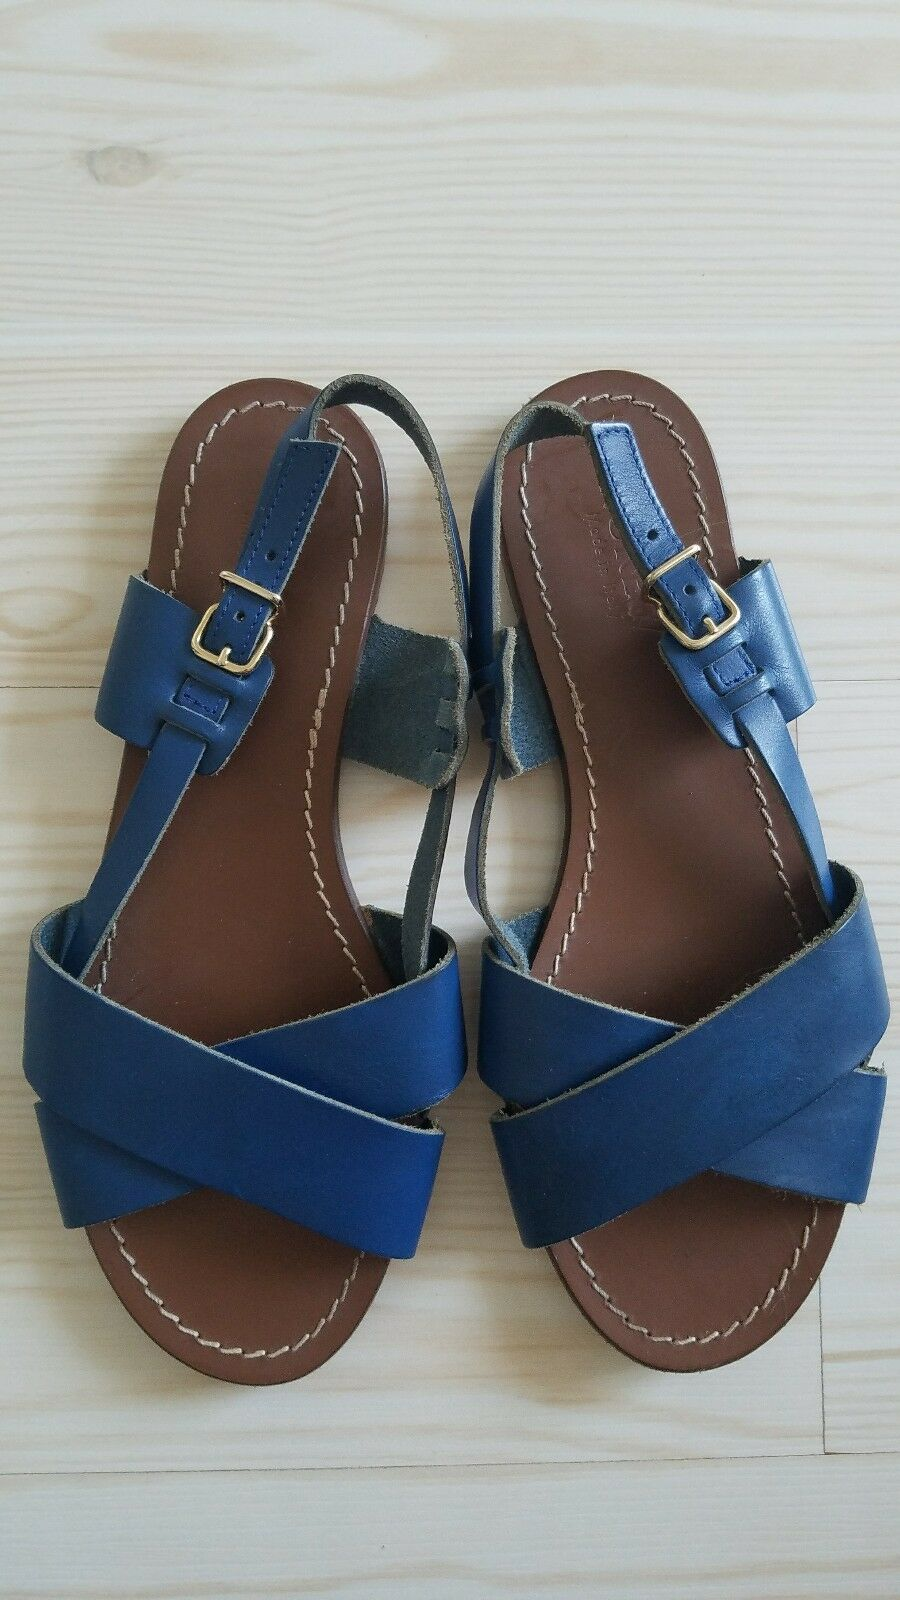 J.Crew Blue Tova Blue J.Crew Leather Sandals Italy 7 M e10e38